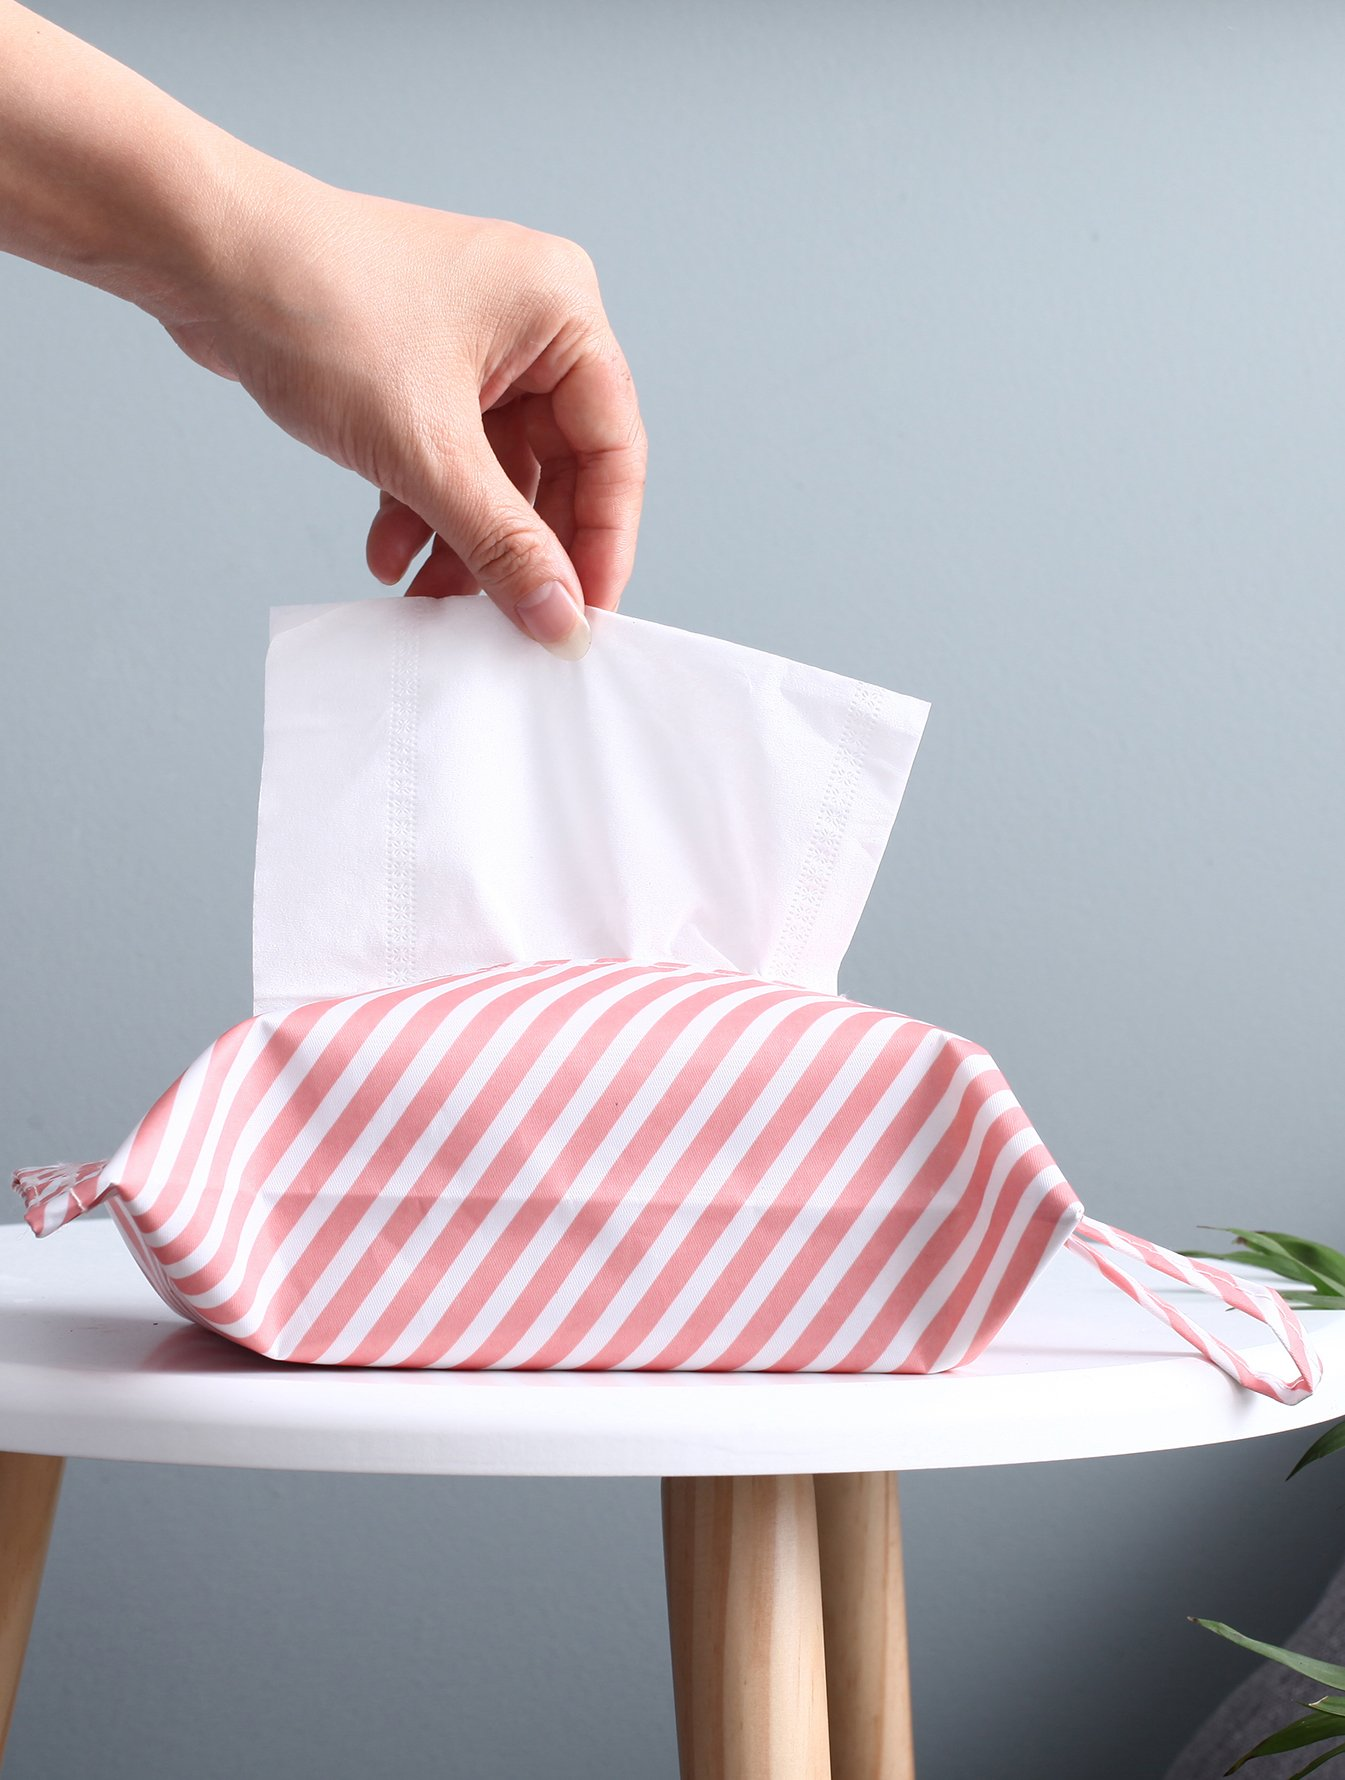 Striped Pattern Tissue Cover